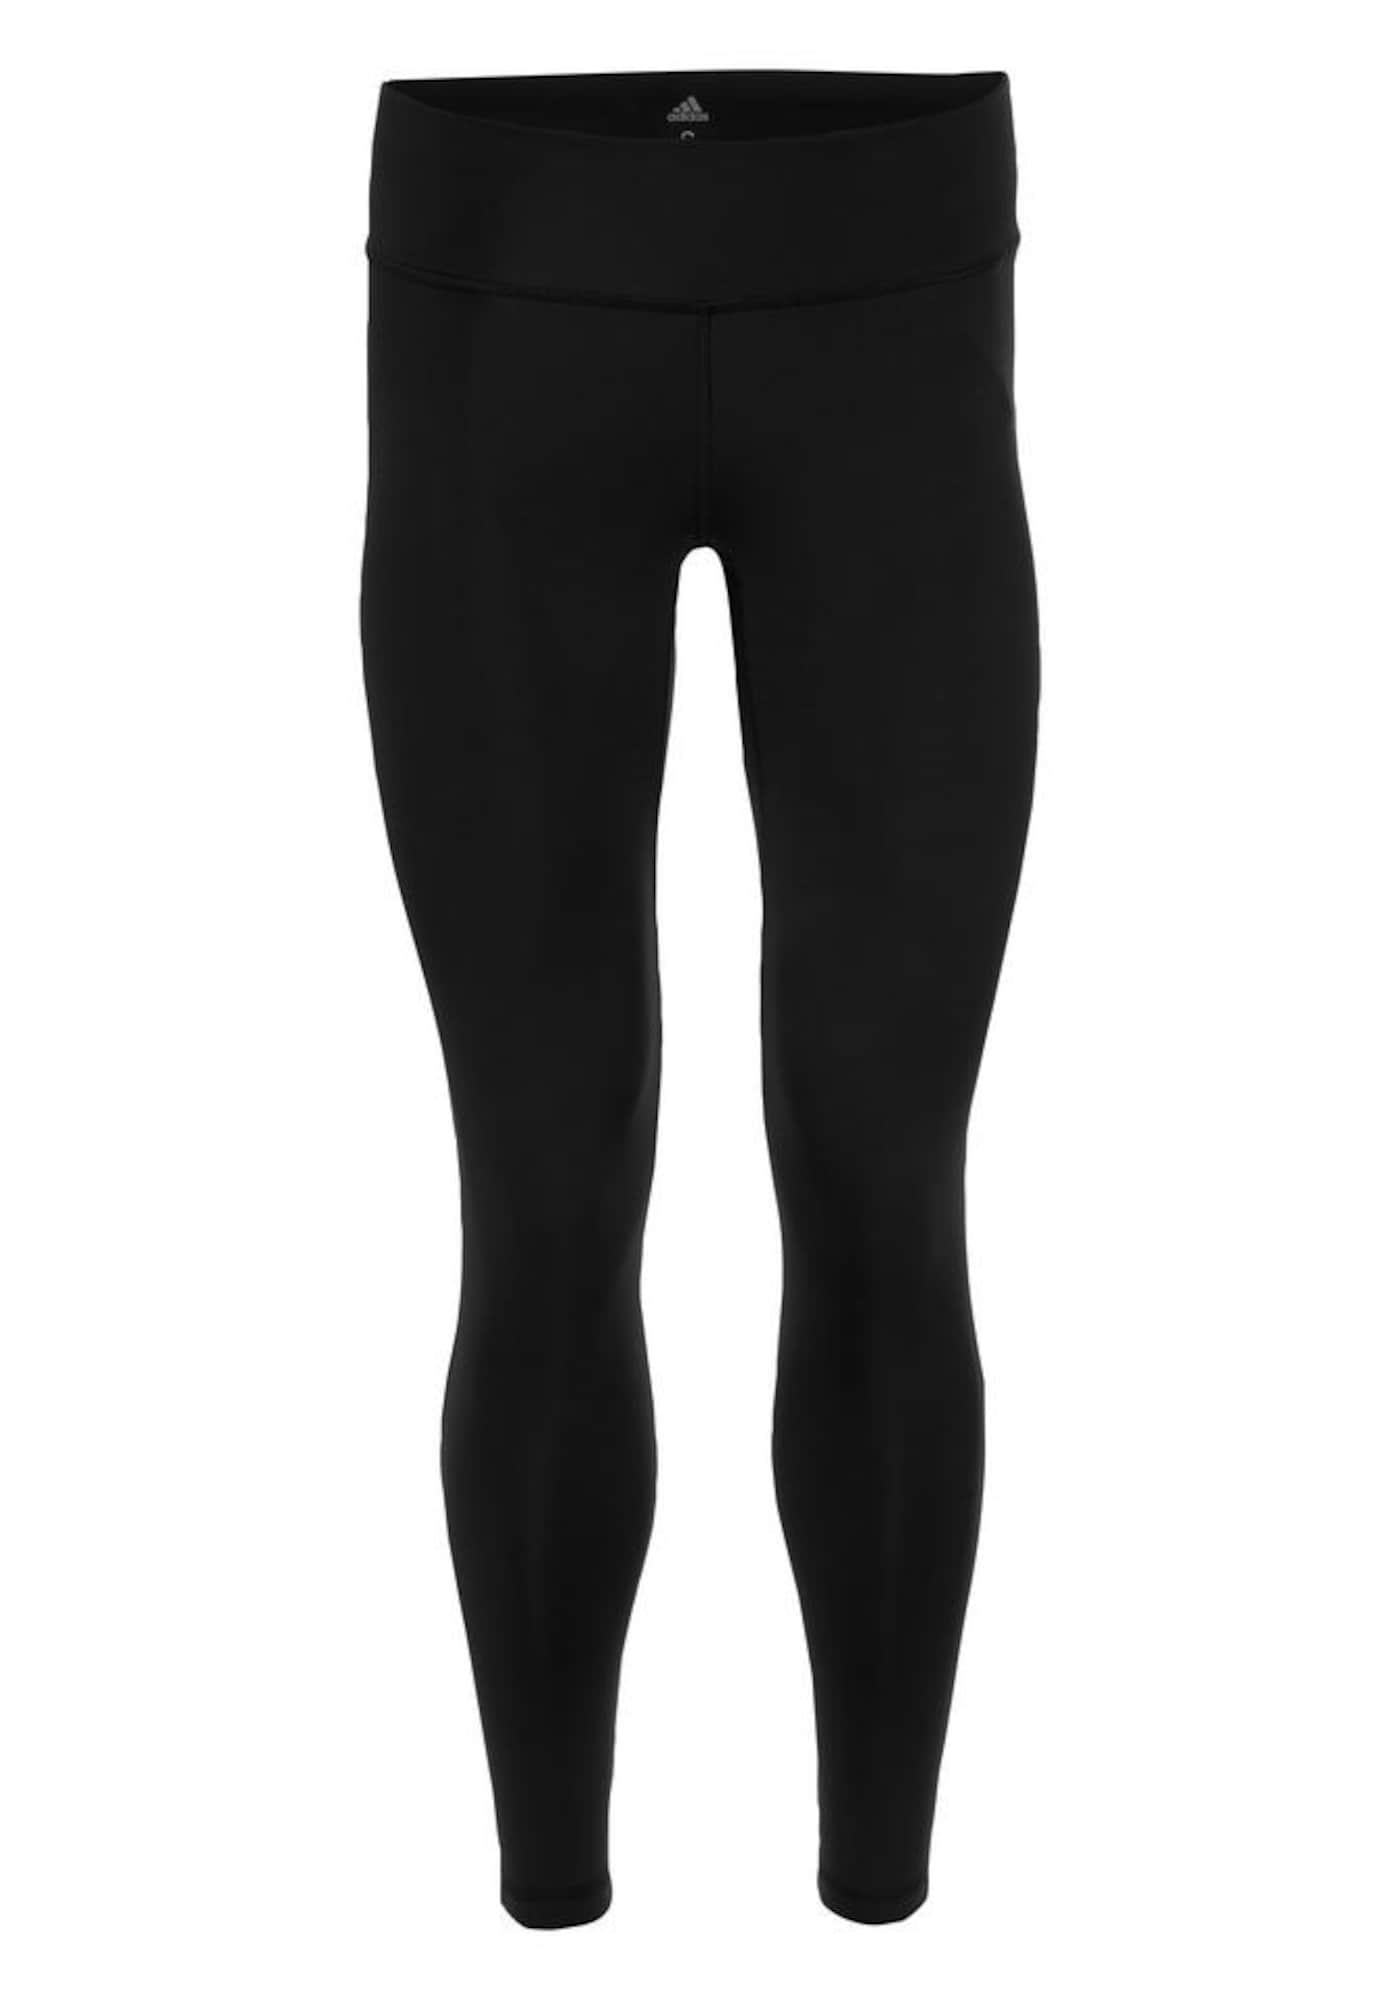 Funktionstights | Sportbekleidung > Sporthosen > Tights | Schwarz | ADIDAS PERFORMANCE